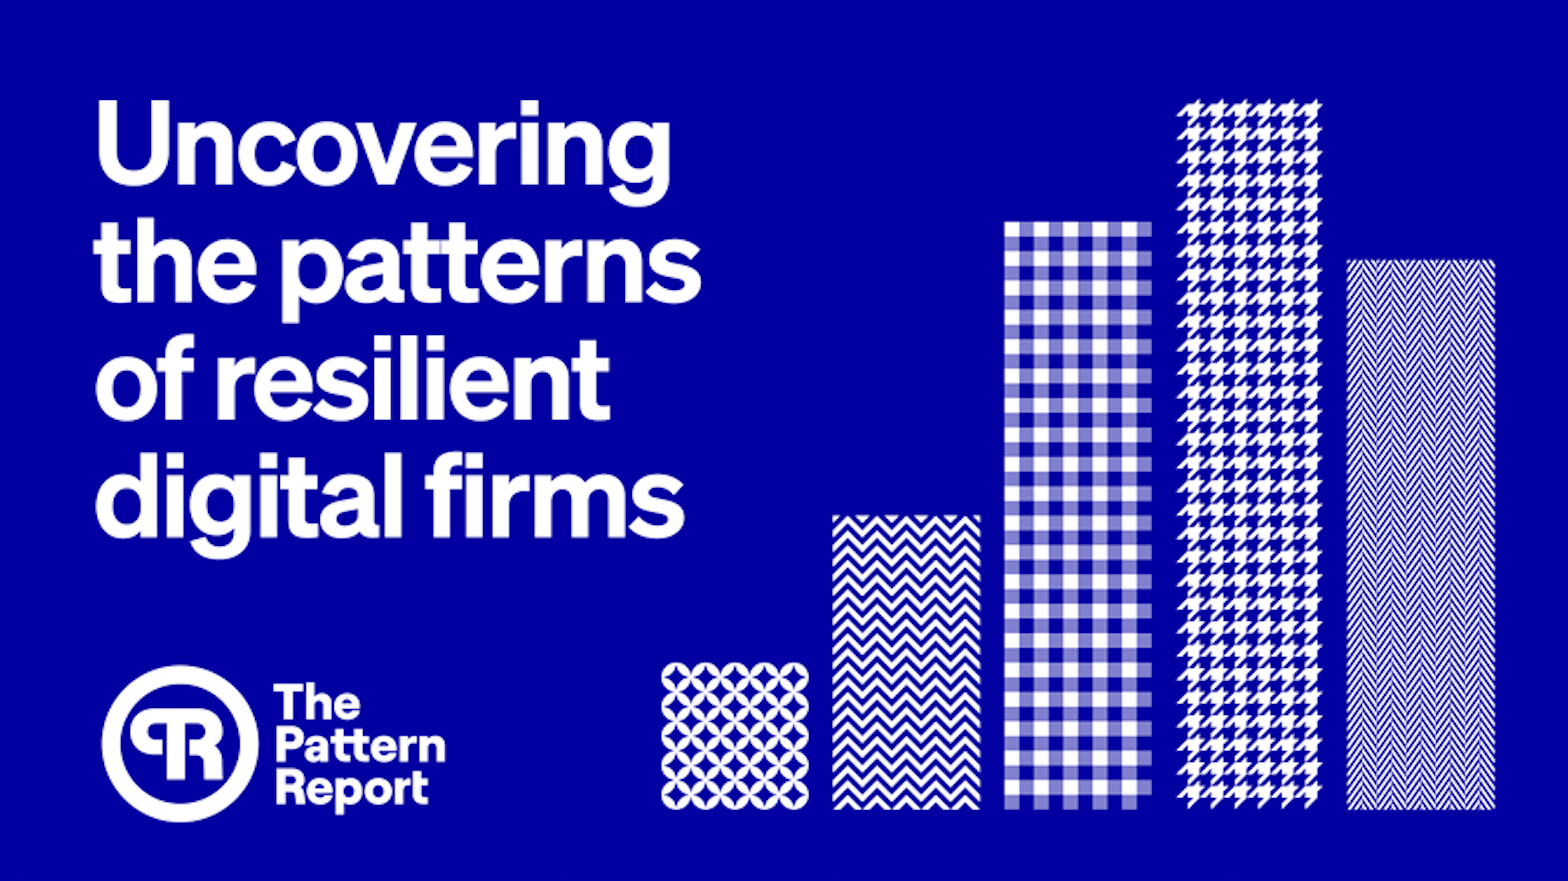 Uncovering the patterns of resilient digital firms